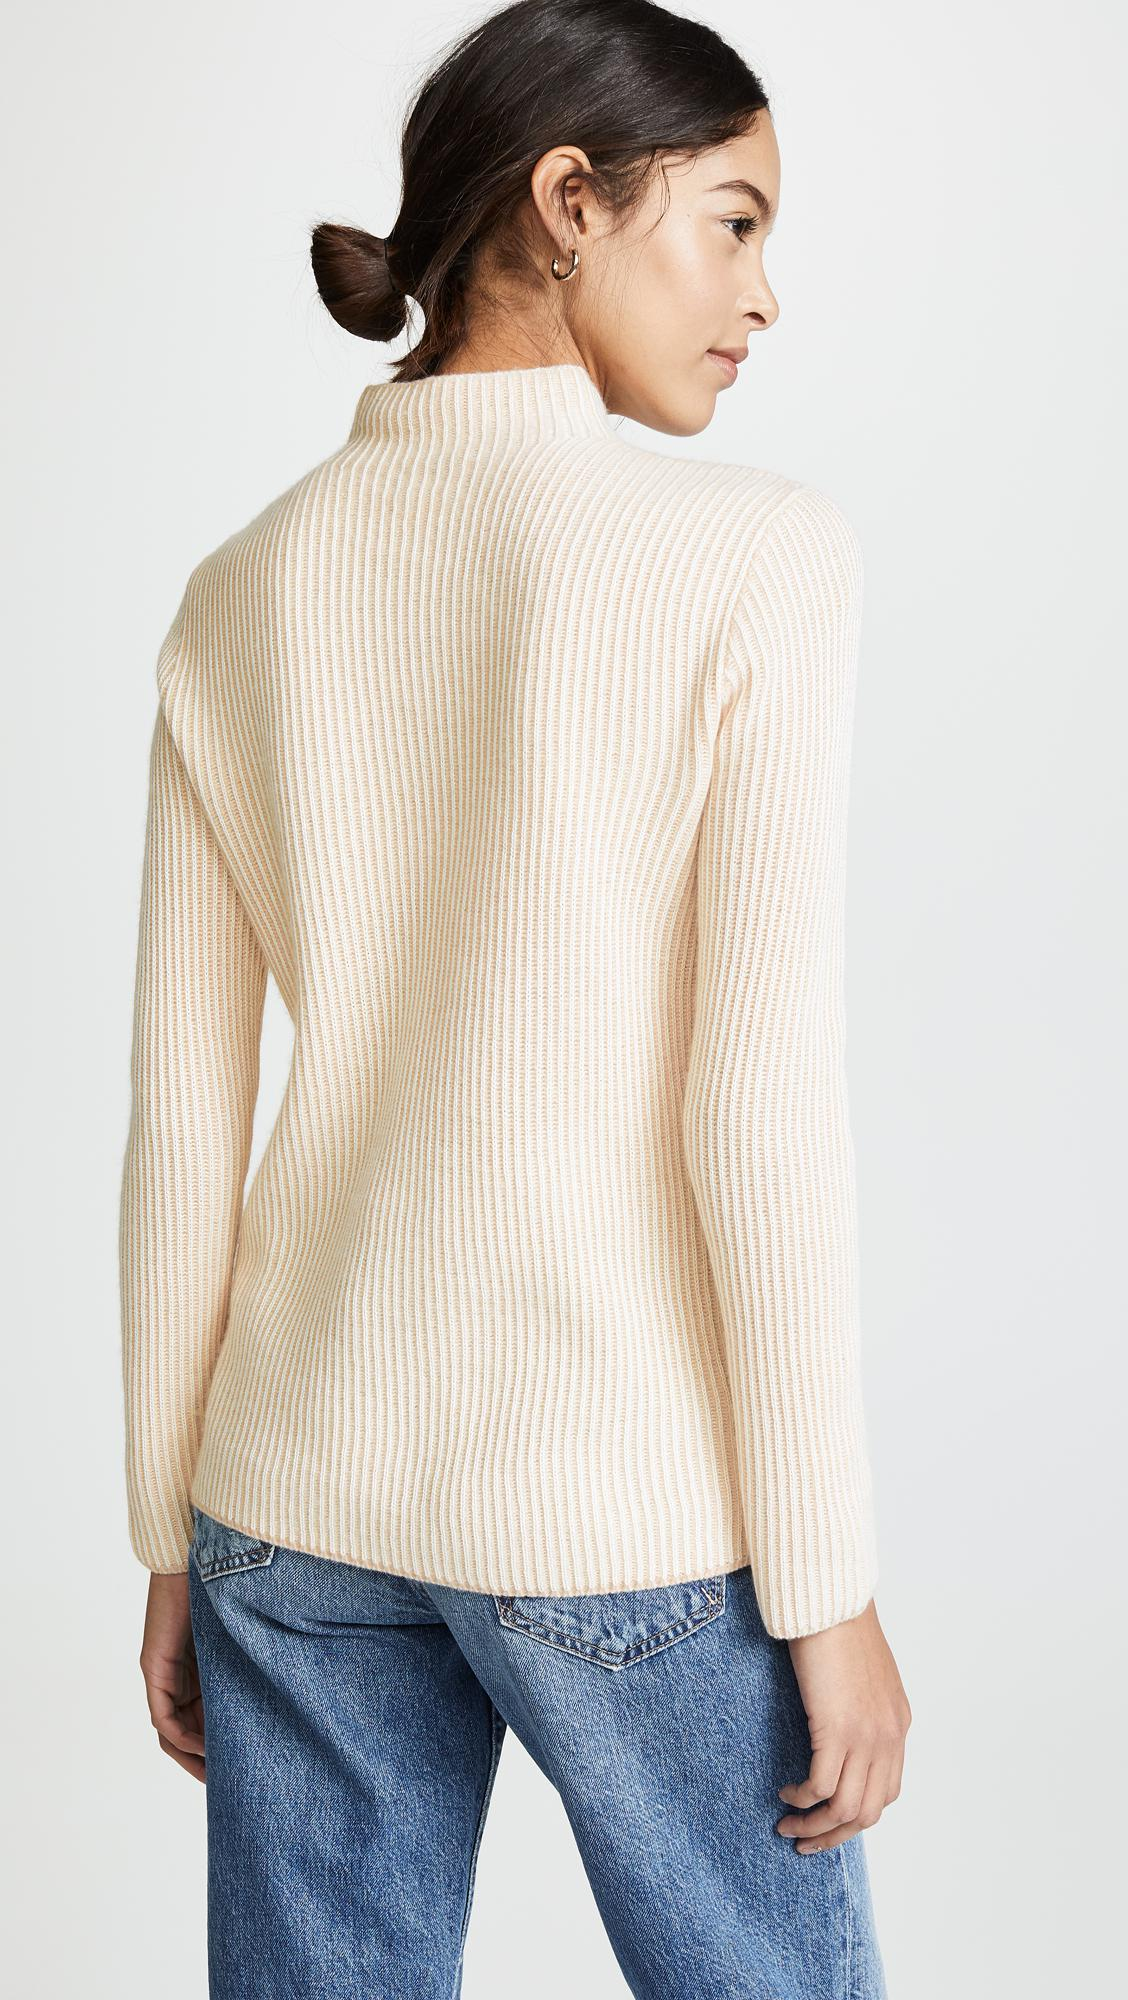 Lyst Sweater Natural Cashmere Monaco In Margee Club rxYZqIr